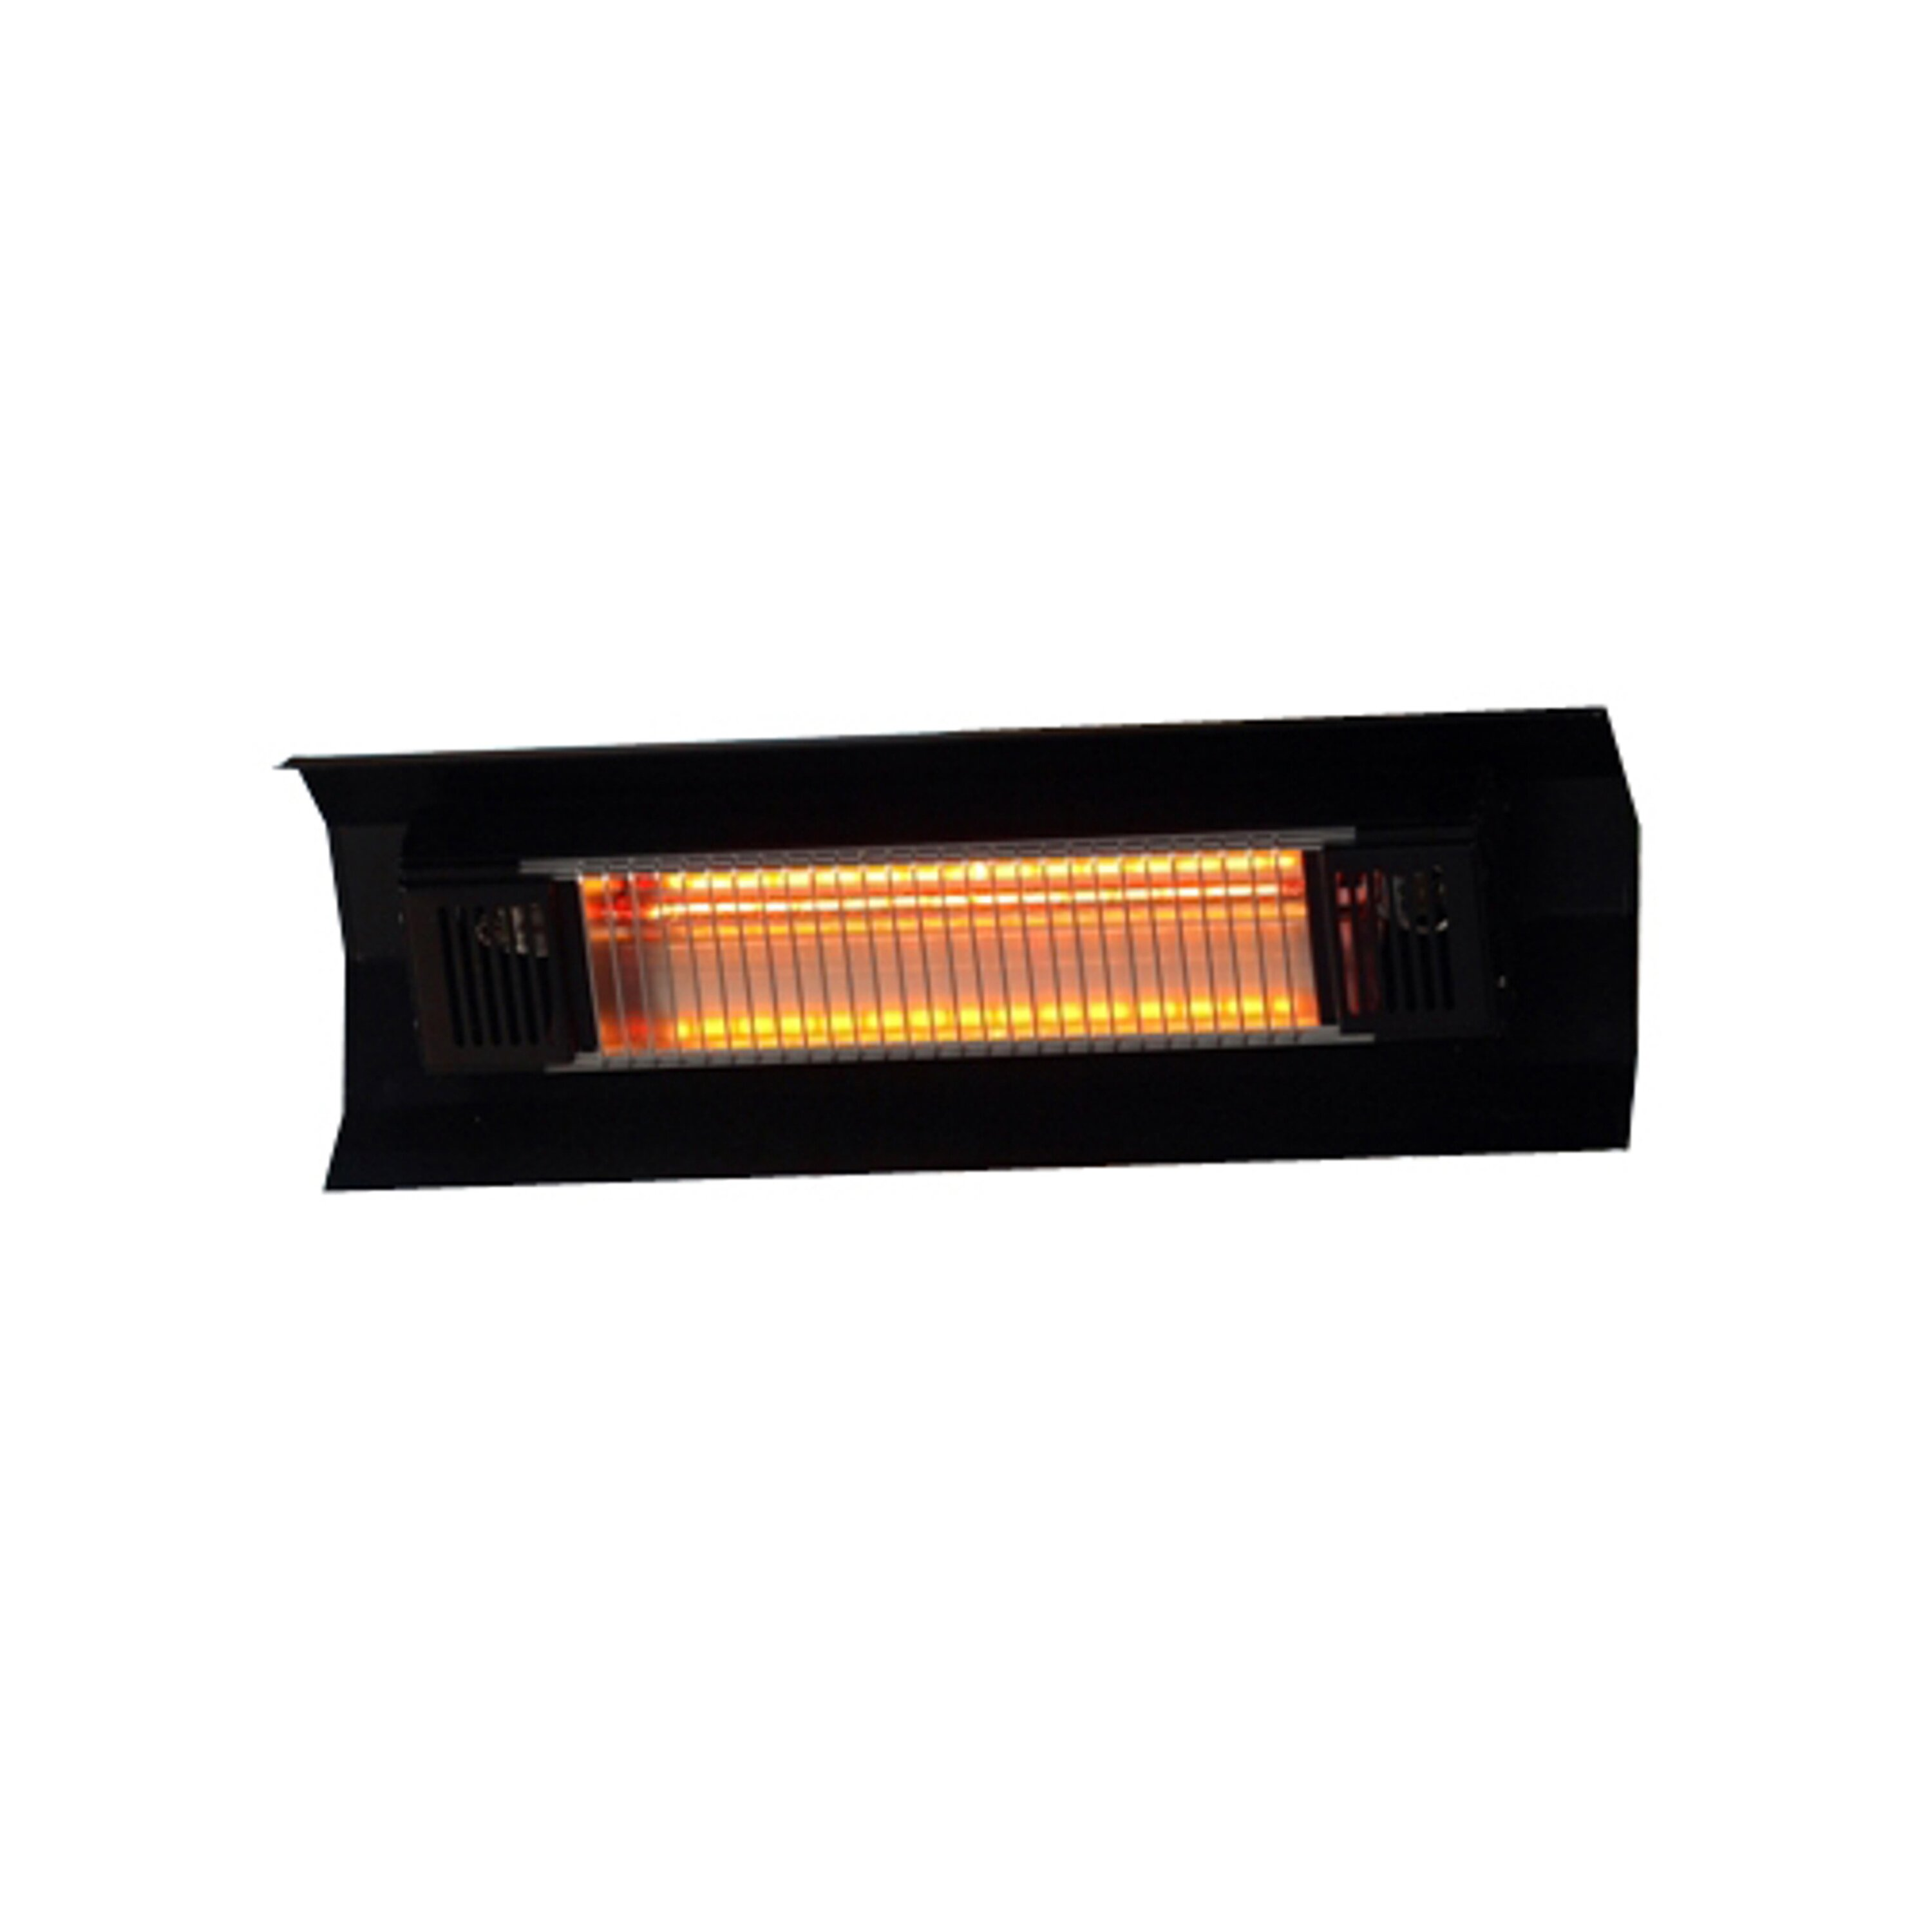 Fire Sense Tabletop Electric Patio Heater Reviews Wayfair  Deluxe Patio Heater Stainless Steel 6580688 Hsn Fire Sense Patio  . Fire Sense Patio Heater 61312 Reviews. Home Design Ideas